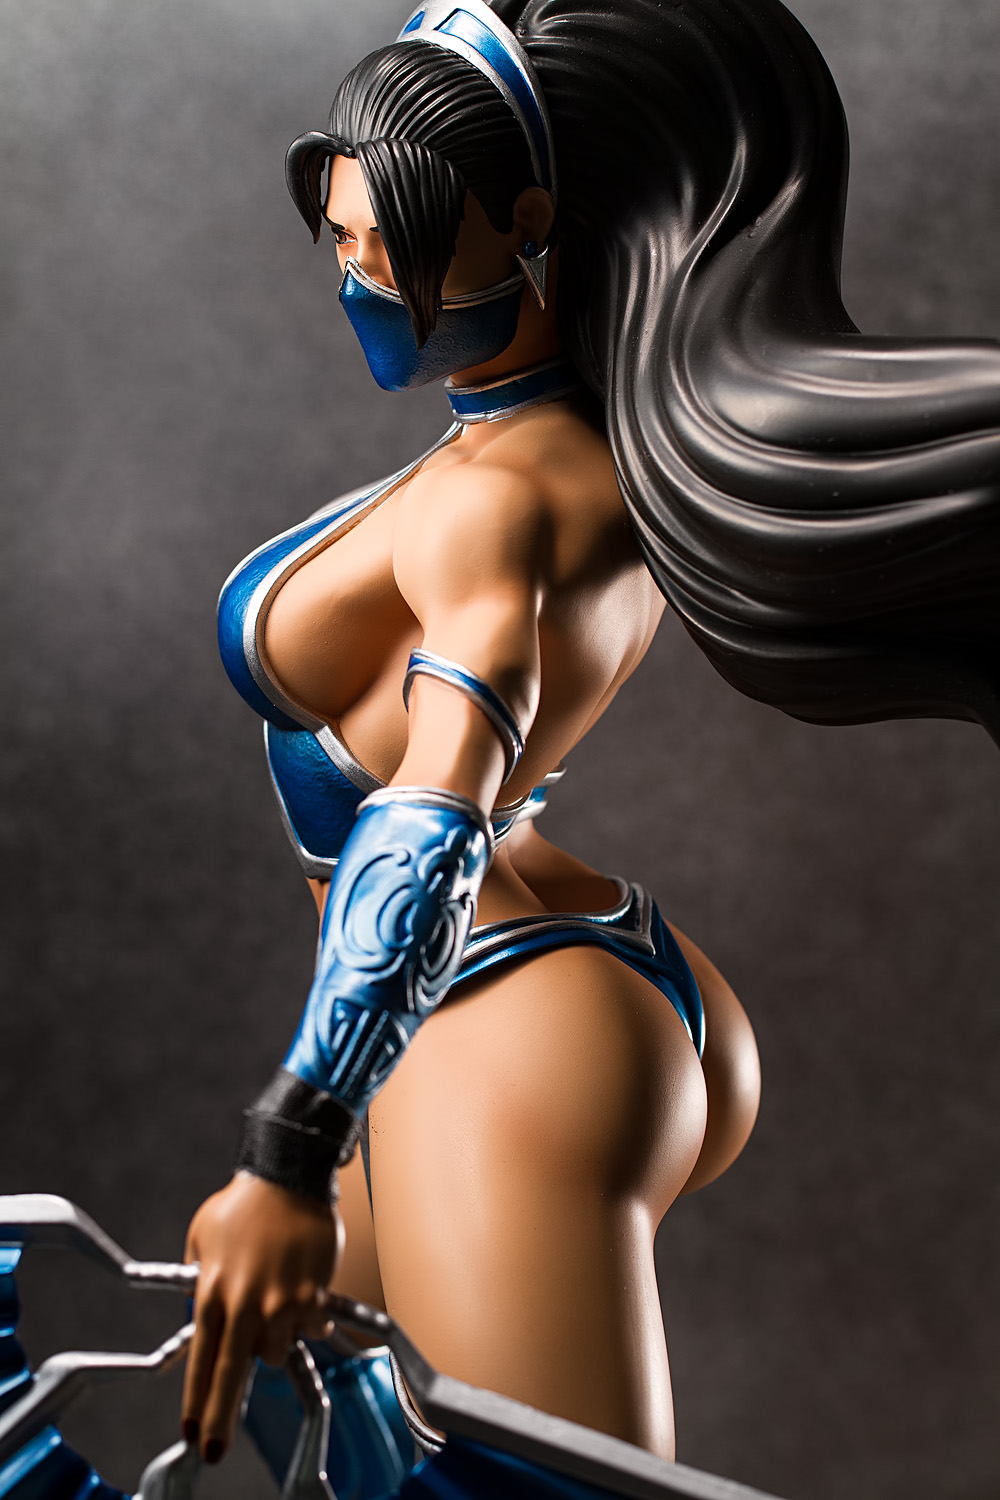 Kitana mk nua naked streaming